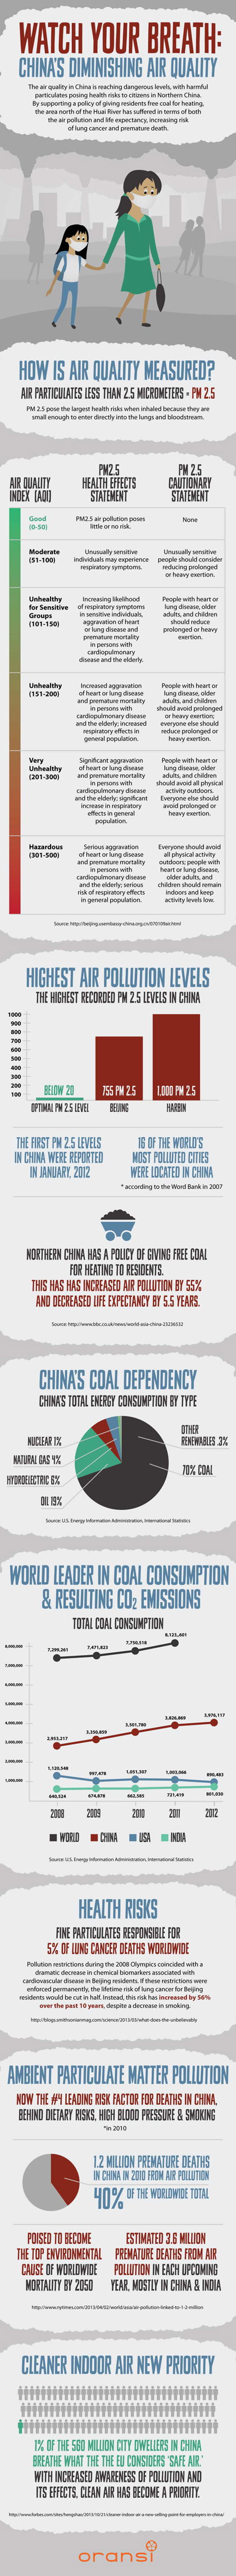 Infographic: China Air Quality